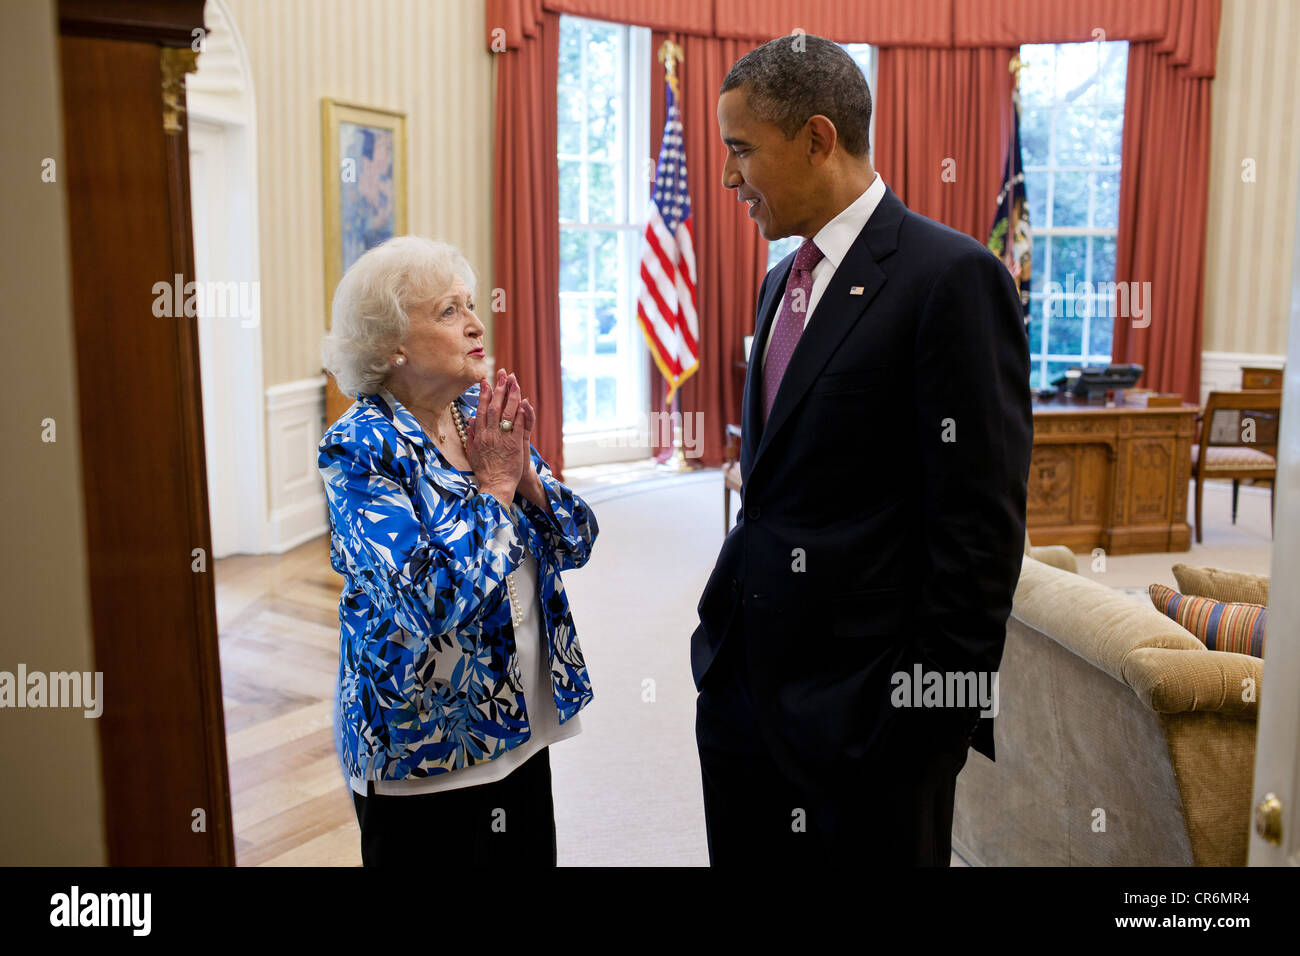 US President Barack Obama talks with acclaimed actress Betty White in the Oval Office of the White House June 11, - Stock Image